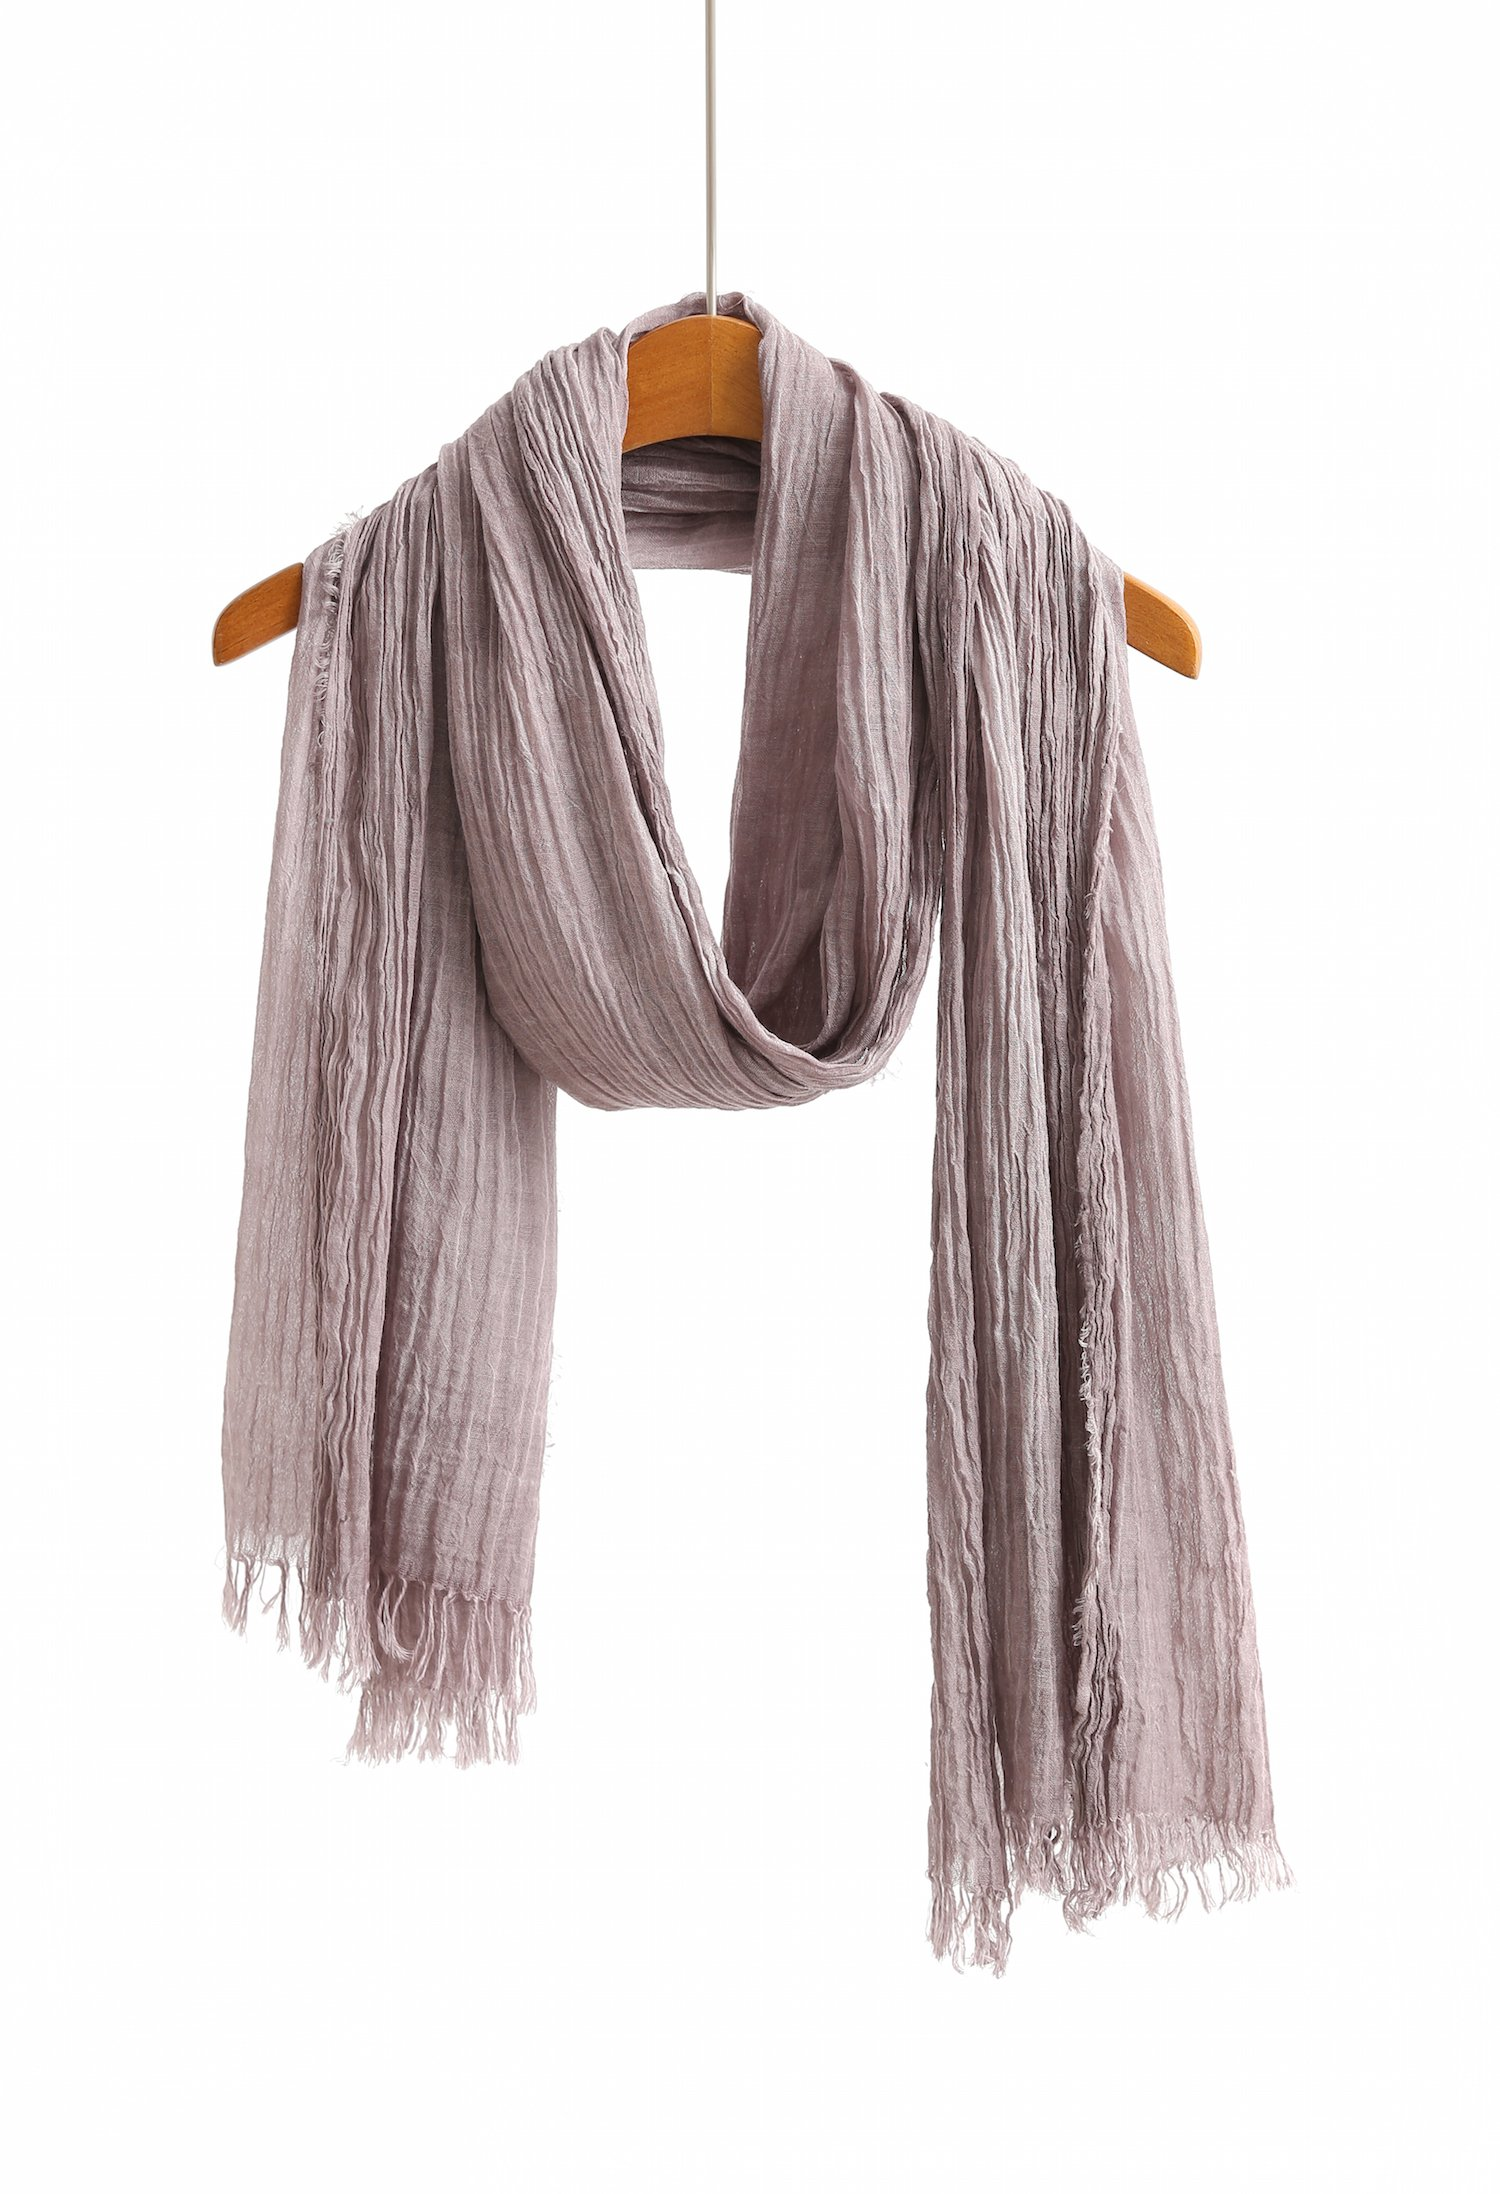 Cotton Scarf Shawl Wrap Soft Lightweight Scarves And Wraps For Men And Women. (Washed purple)